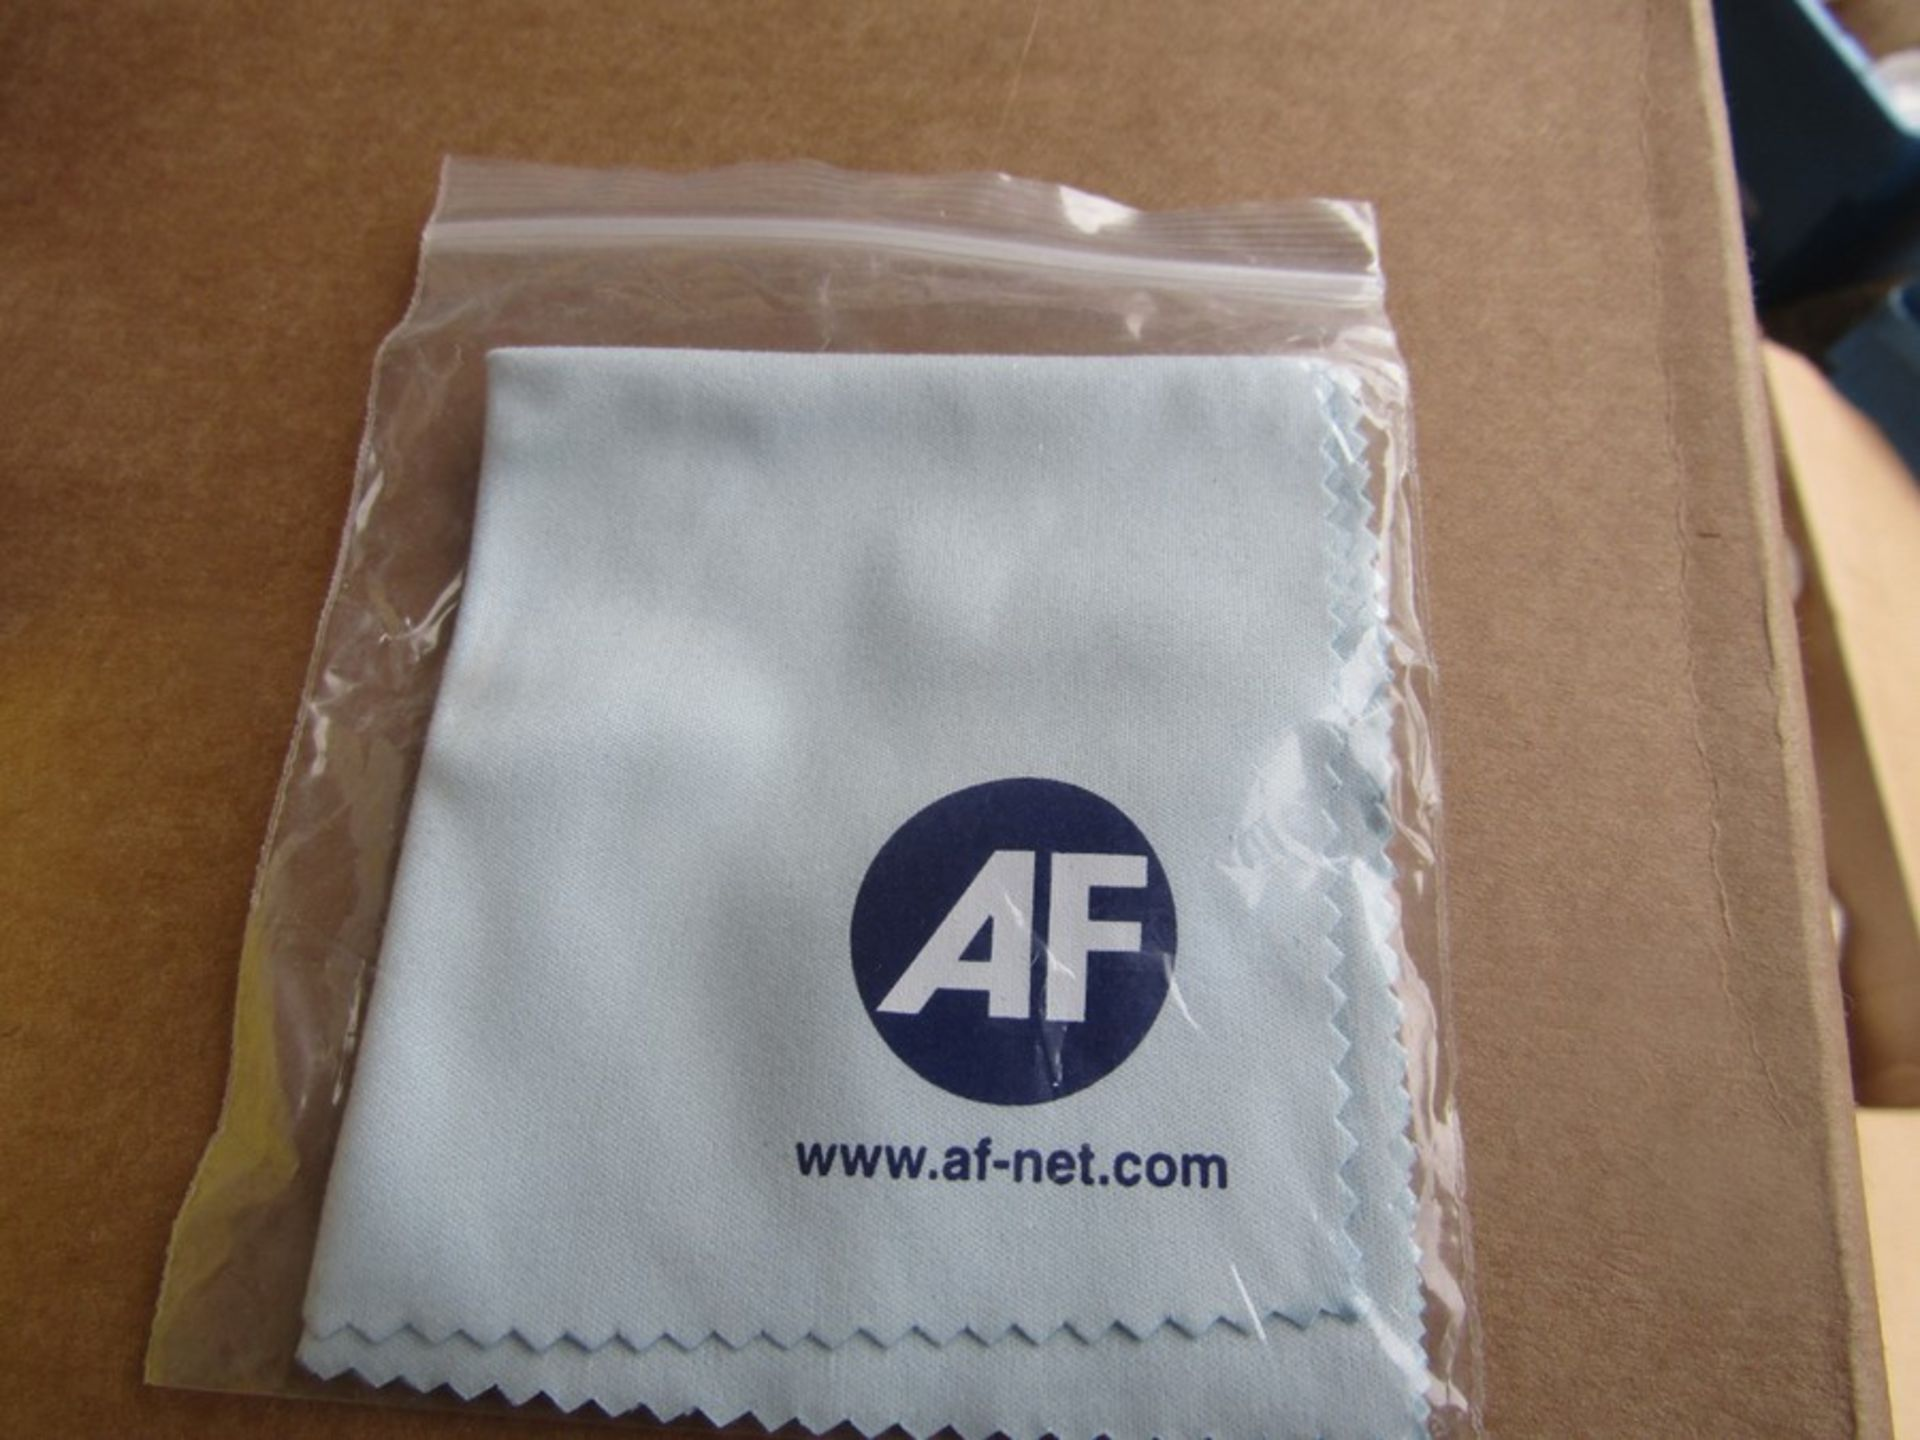 13 x AF Pack of 1 Blue Easy-Clene Multi-purpose Wipes for General Cleaning, Office Use - Image 2 of 3